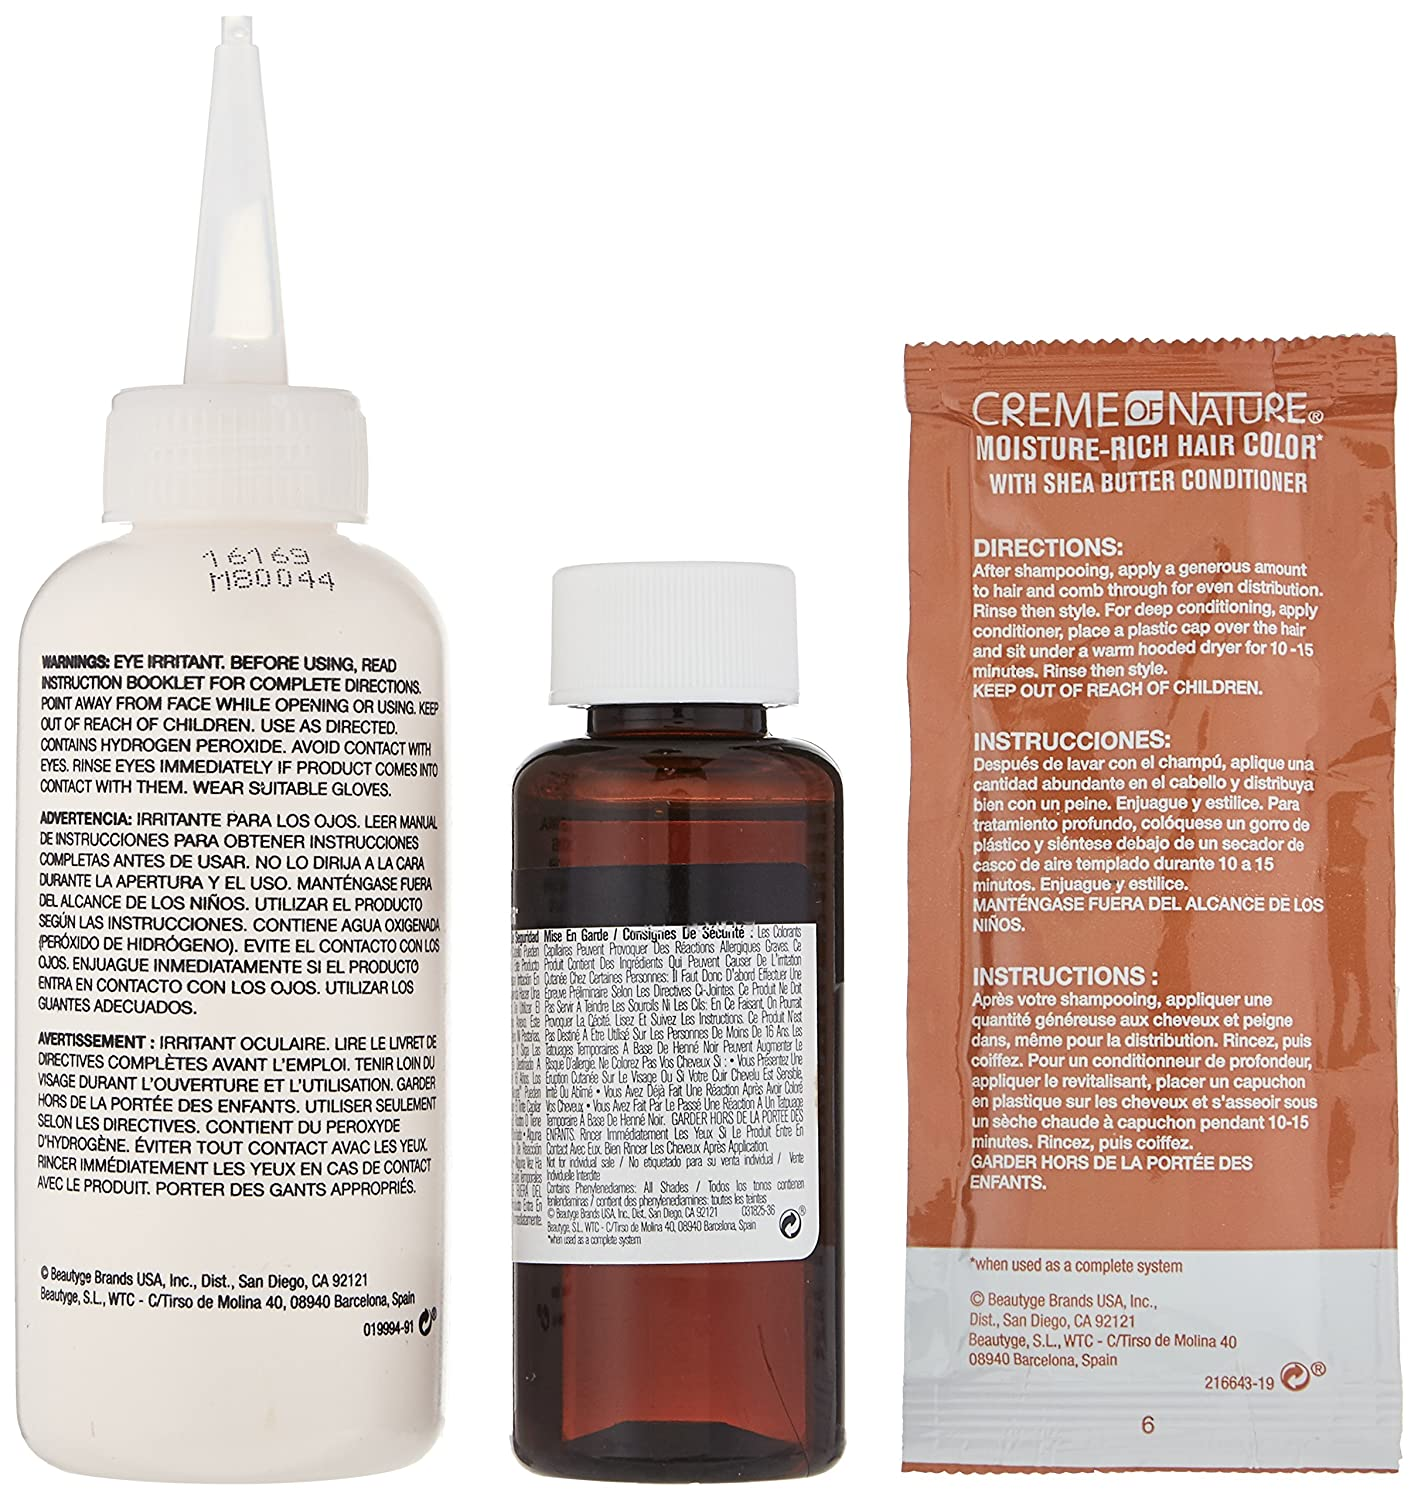 Amazon.com : Creme of Nature Liquid Hair Color, Red Hot Burgundy : Beauty